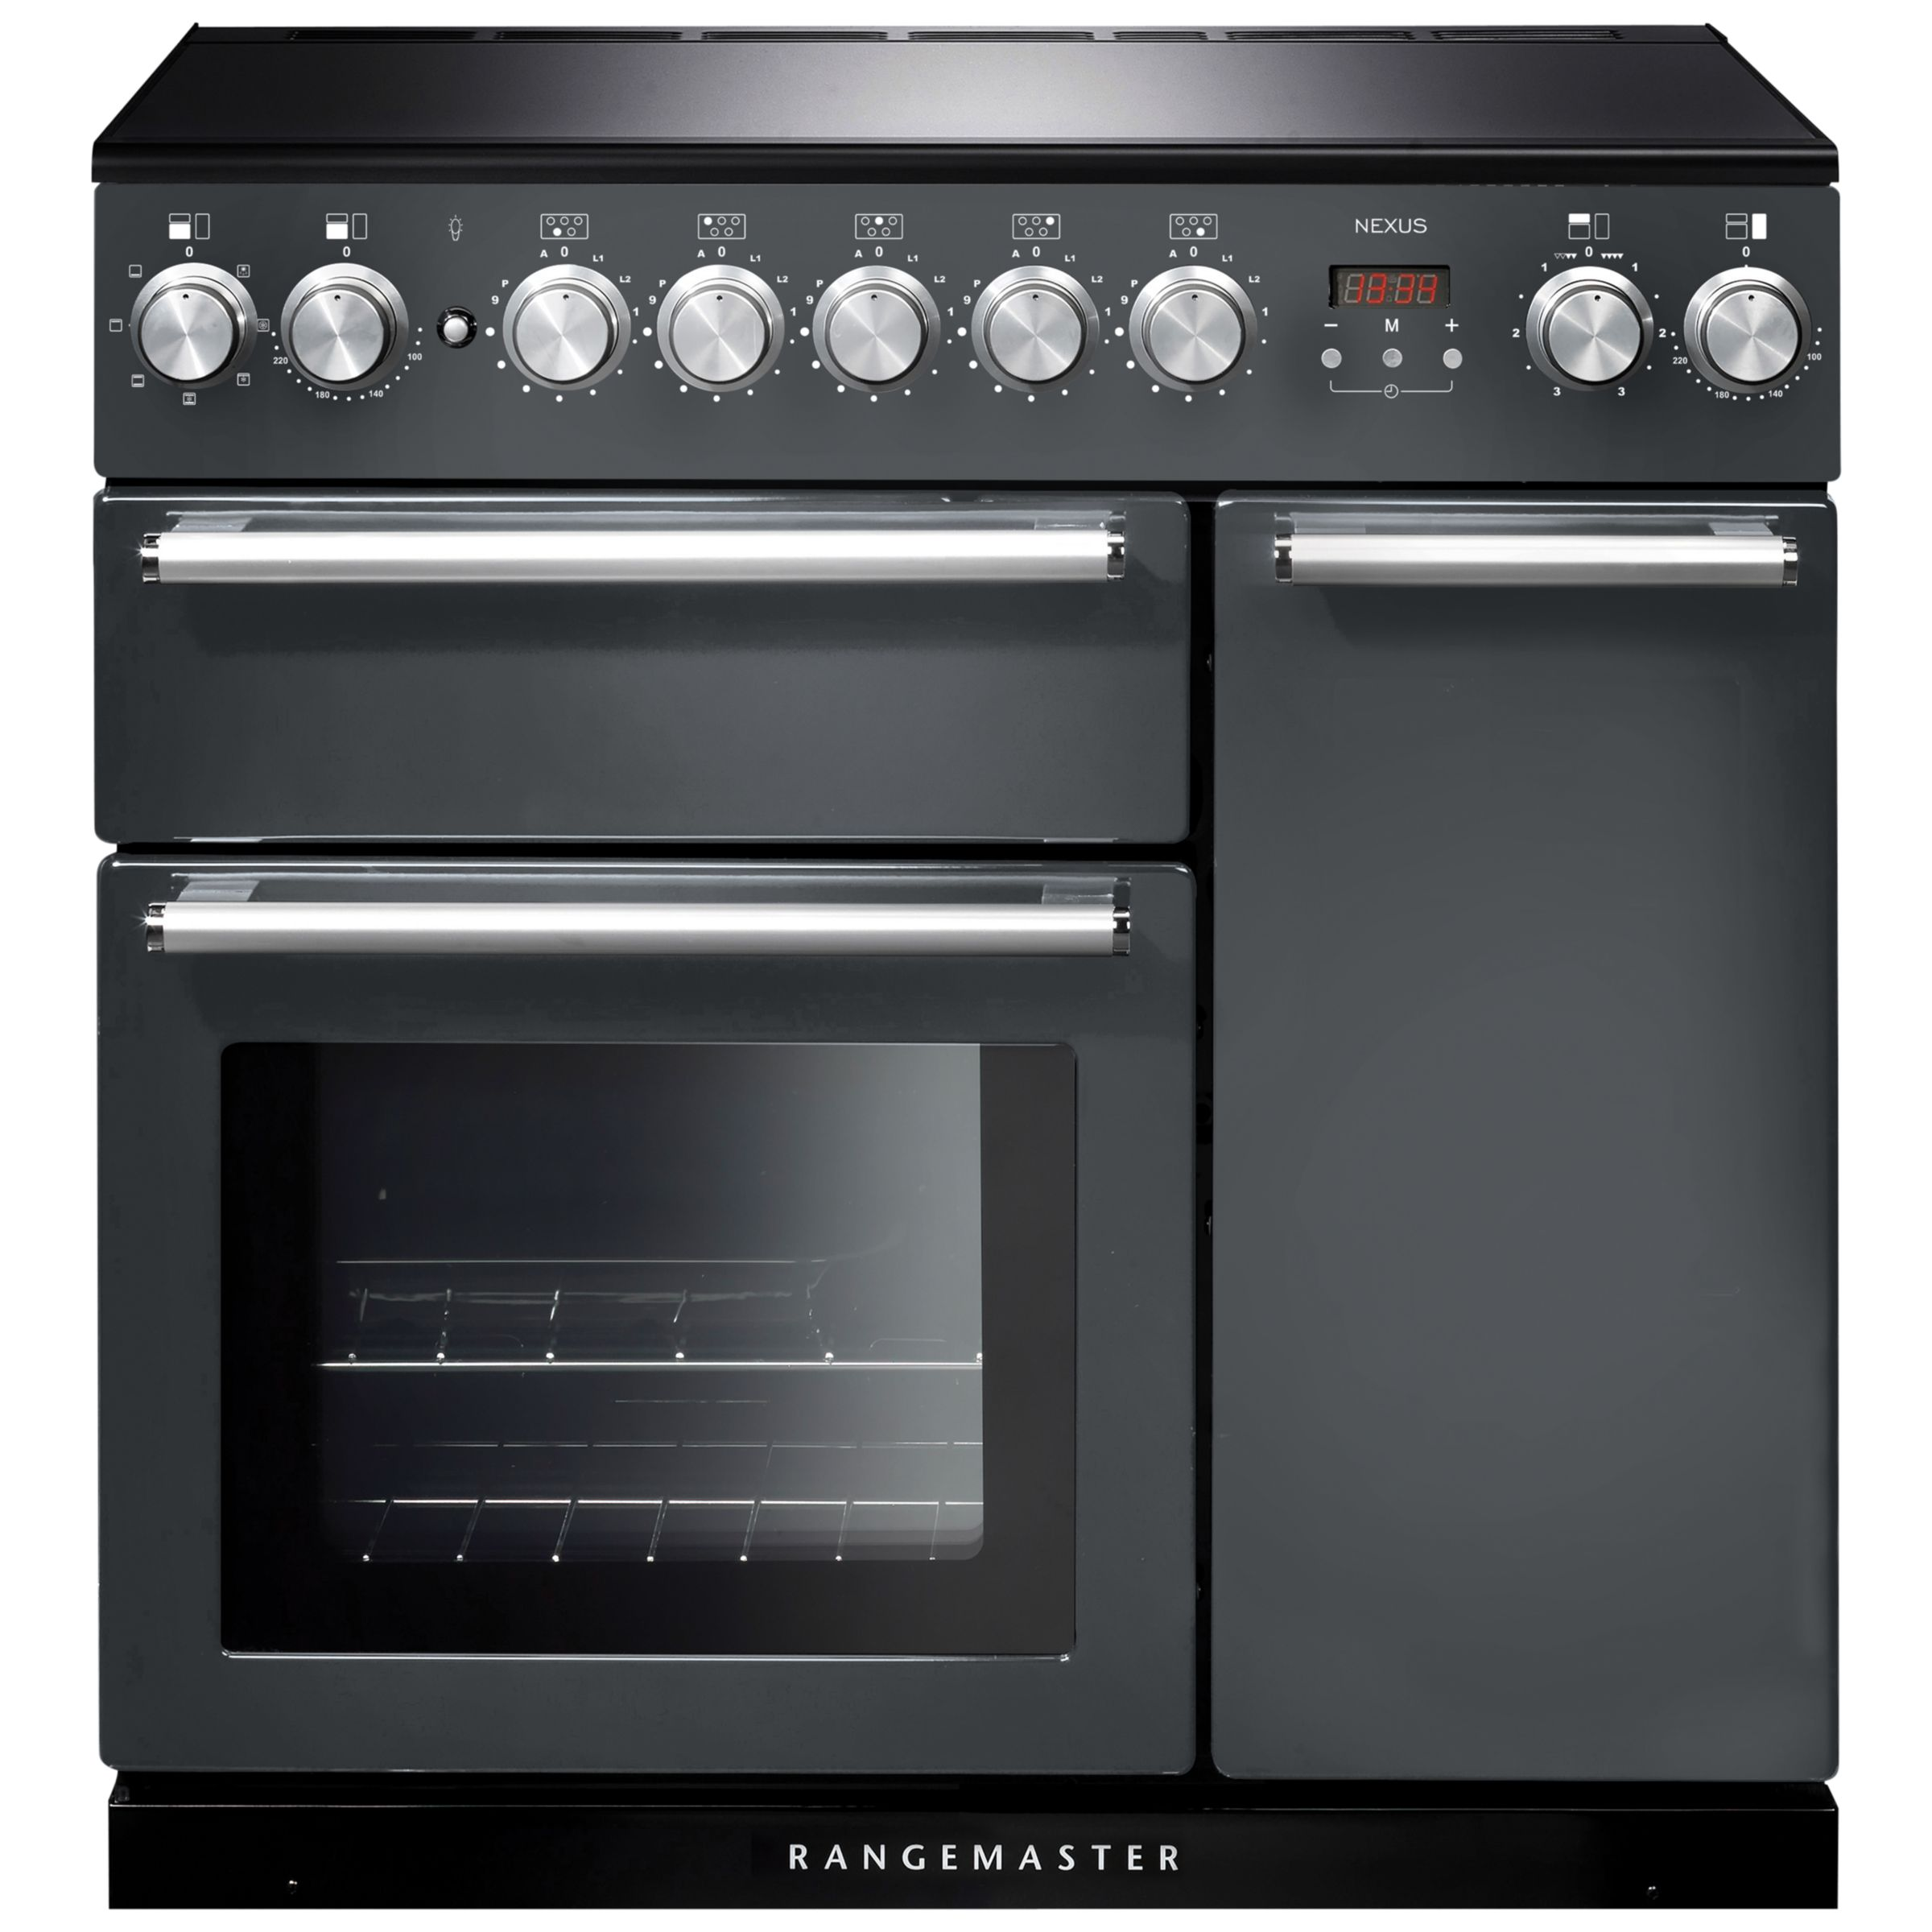 Rangemaster Rangemaster Nexus 90 Induction Range Cooker